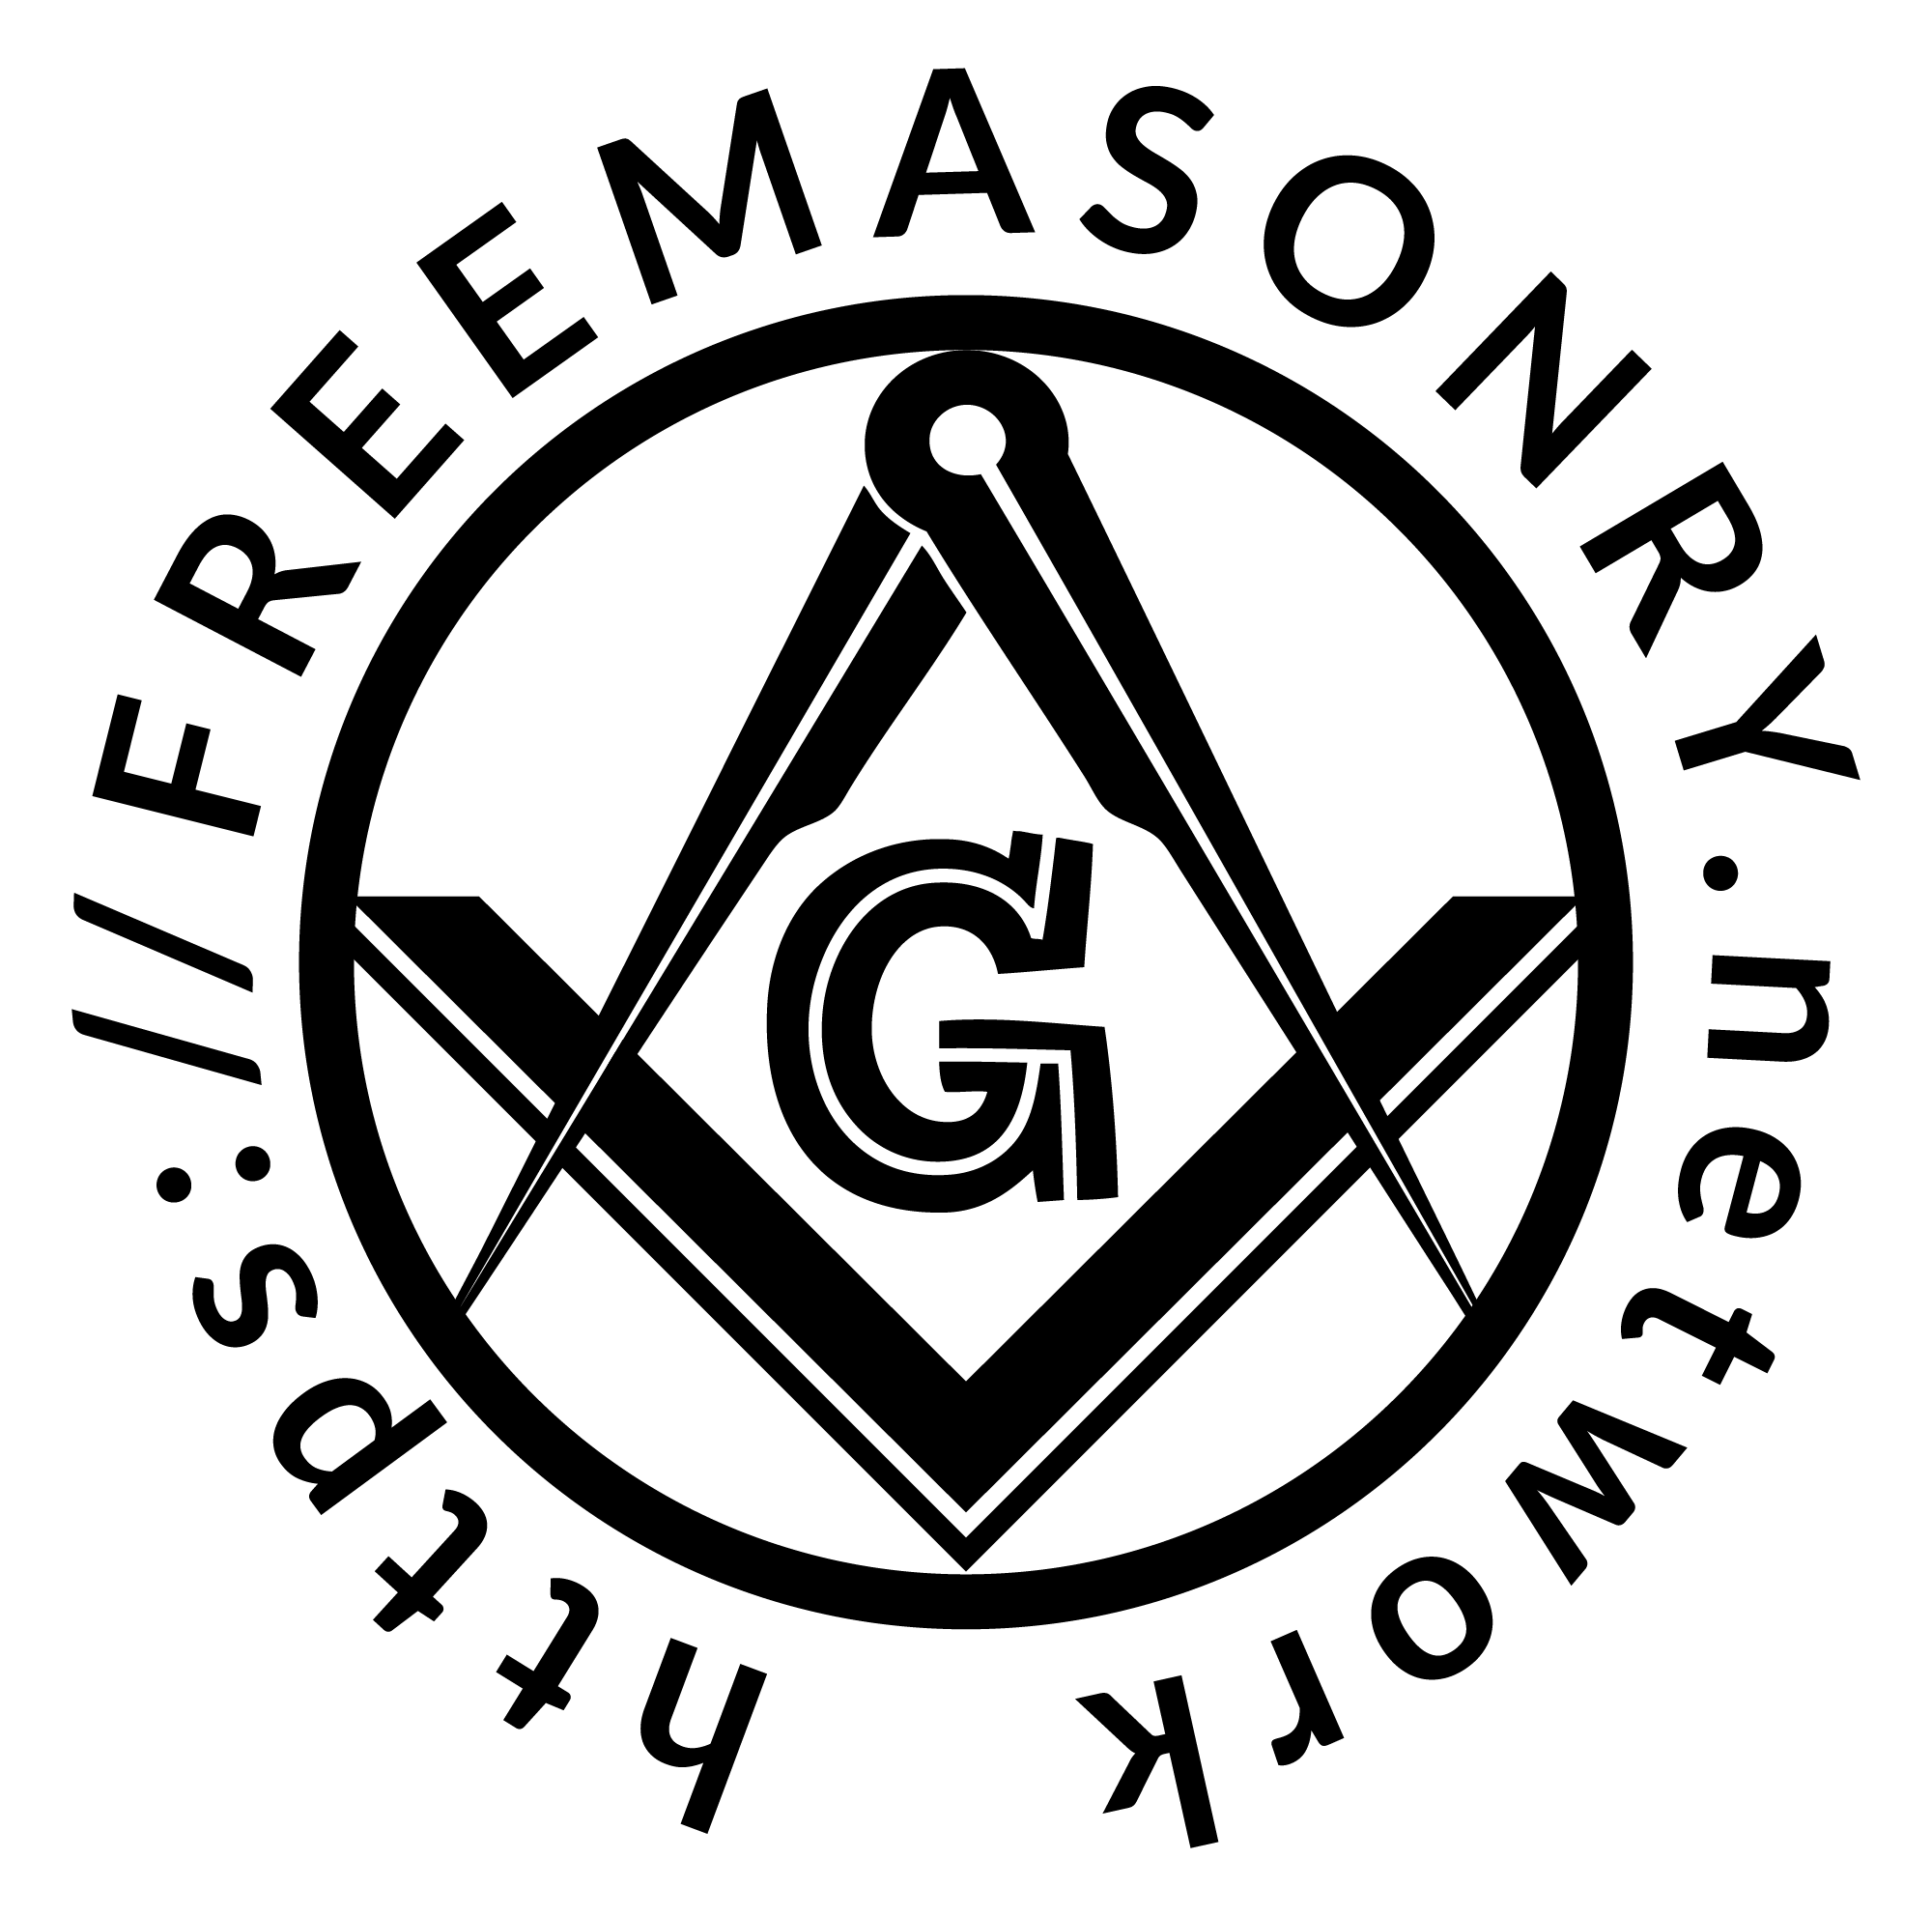 FREEMASONRY AND THE CATHOLIC CHURCH